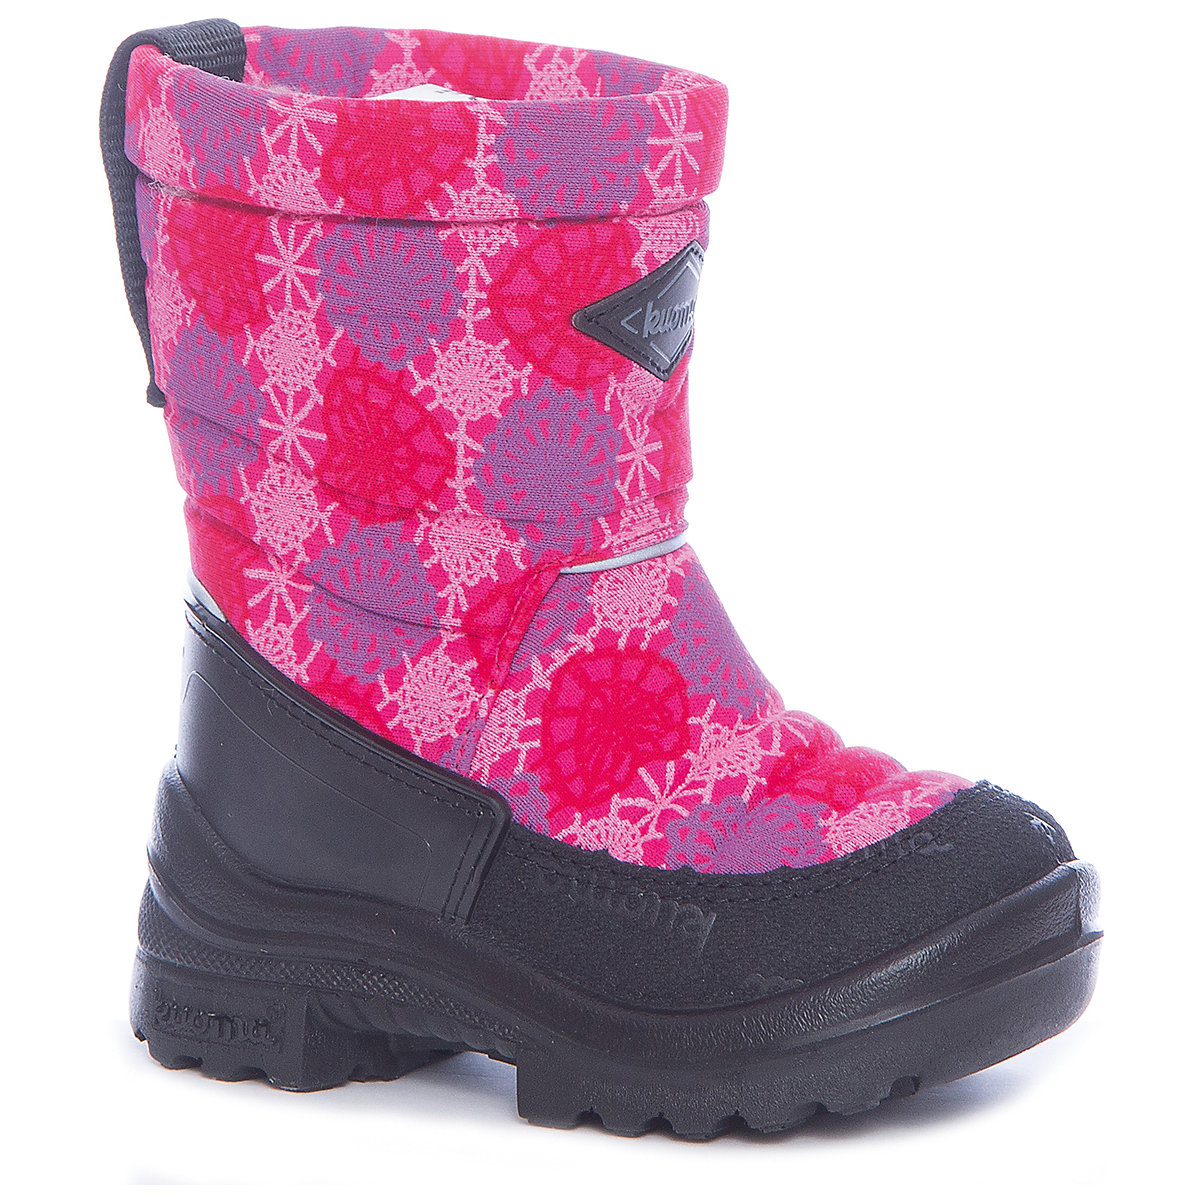 Boots KUOMA for girls 7047305 Valenki Uggi Winter Baby Kids Children shoes